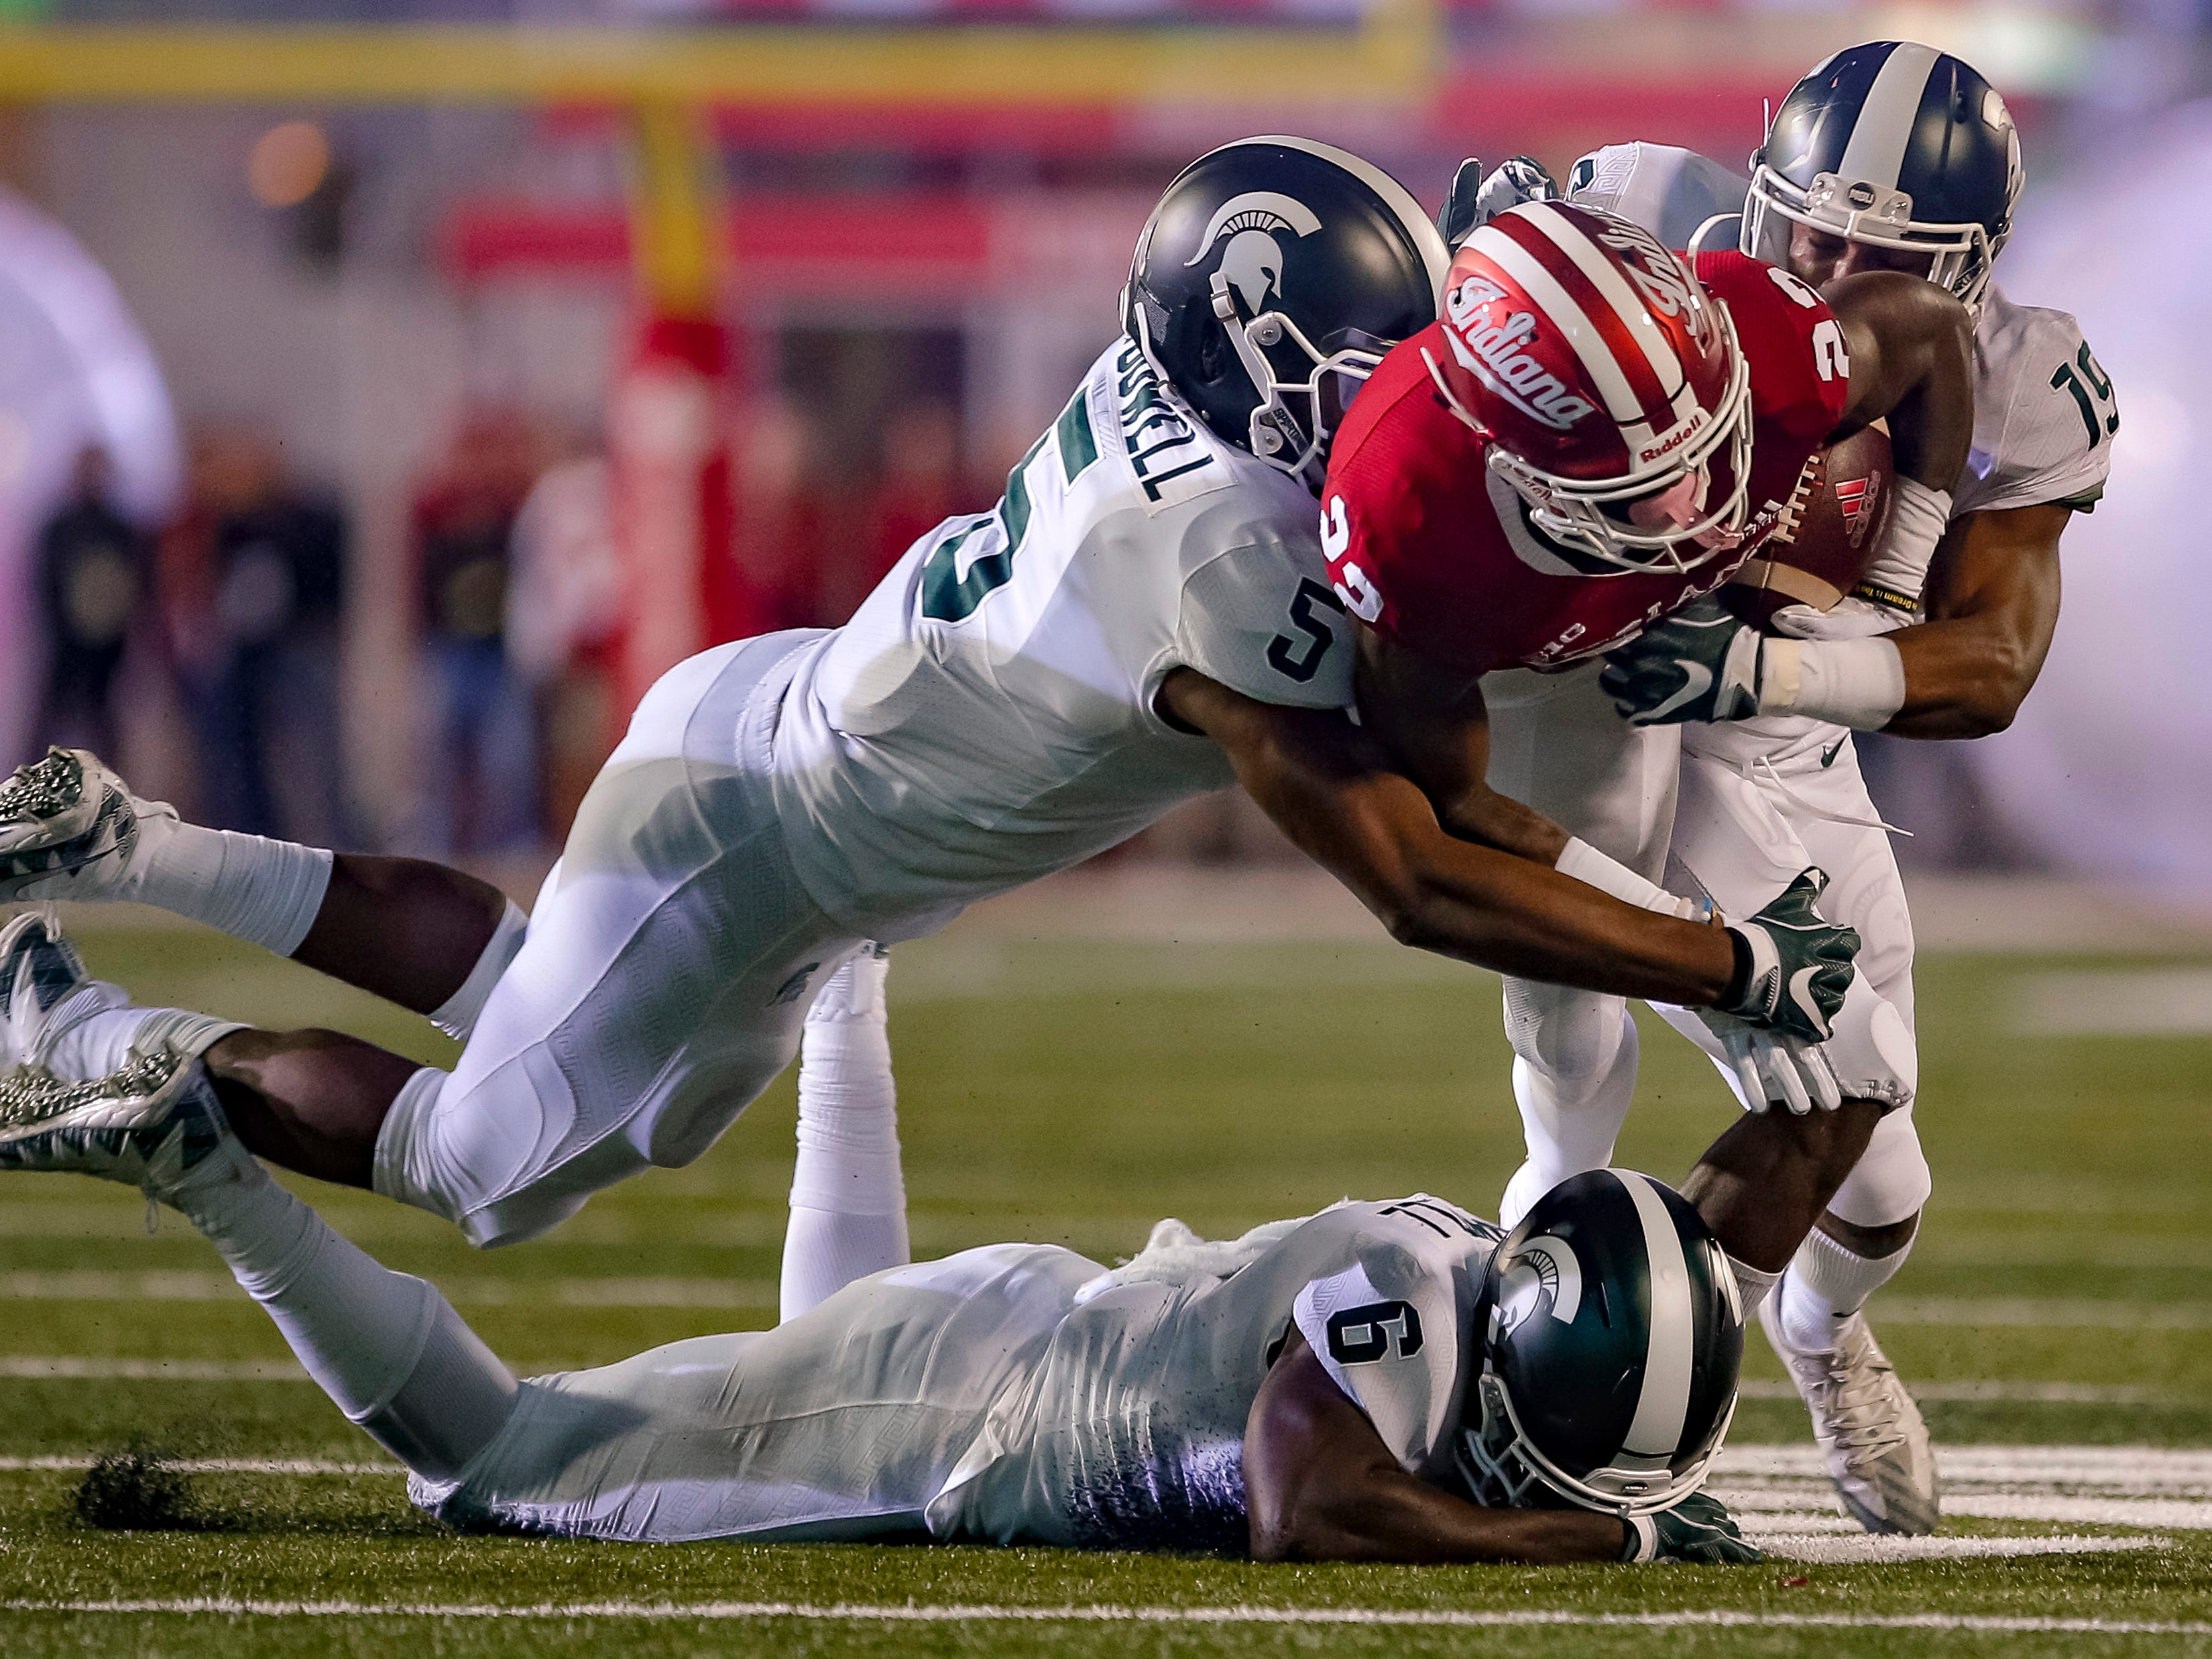 Whop Philyor #22 of the Indiana Hoosiers is tackled while rushing by Andrew Dowell #5 and Josh Butler #19 of the Michigan State Spartans during the game at Memorial Stadium on September 22, 2018 in Bloomington, Indiana.